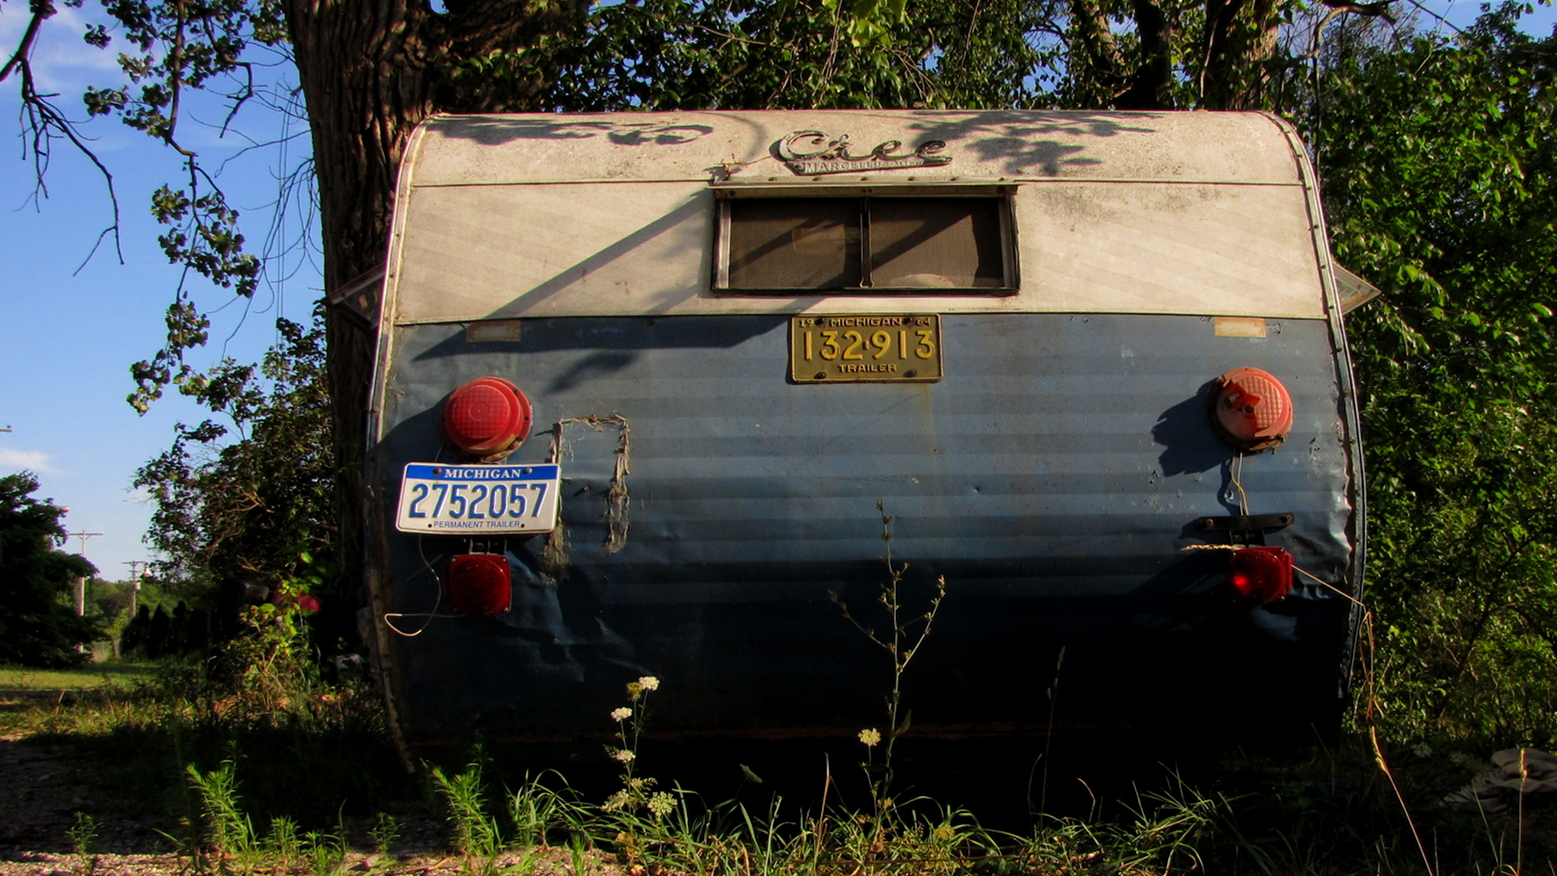 Camper near the trees